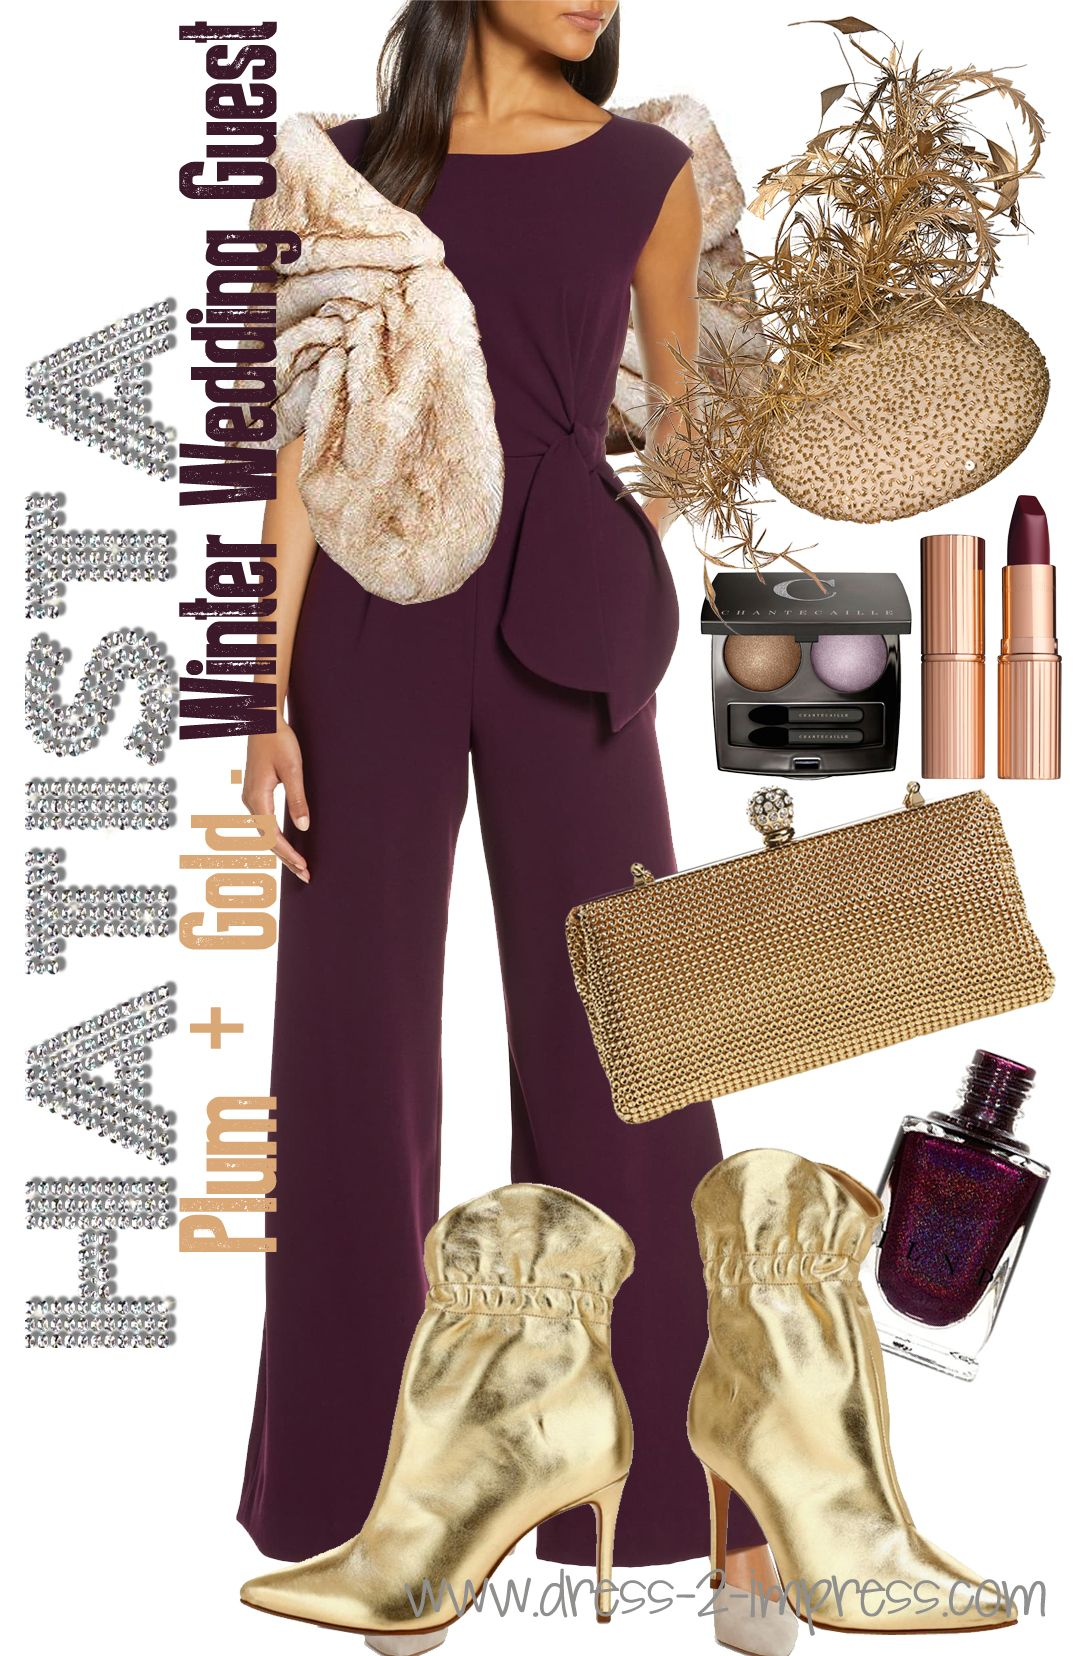 Plum And Gold Outfit For A Winter Wedding Guest If You Re Attending A Winter Wedding Wedding Guest Outfit Winter Winter Fashion Outfits Wedding Guest Outfit